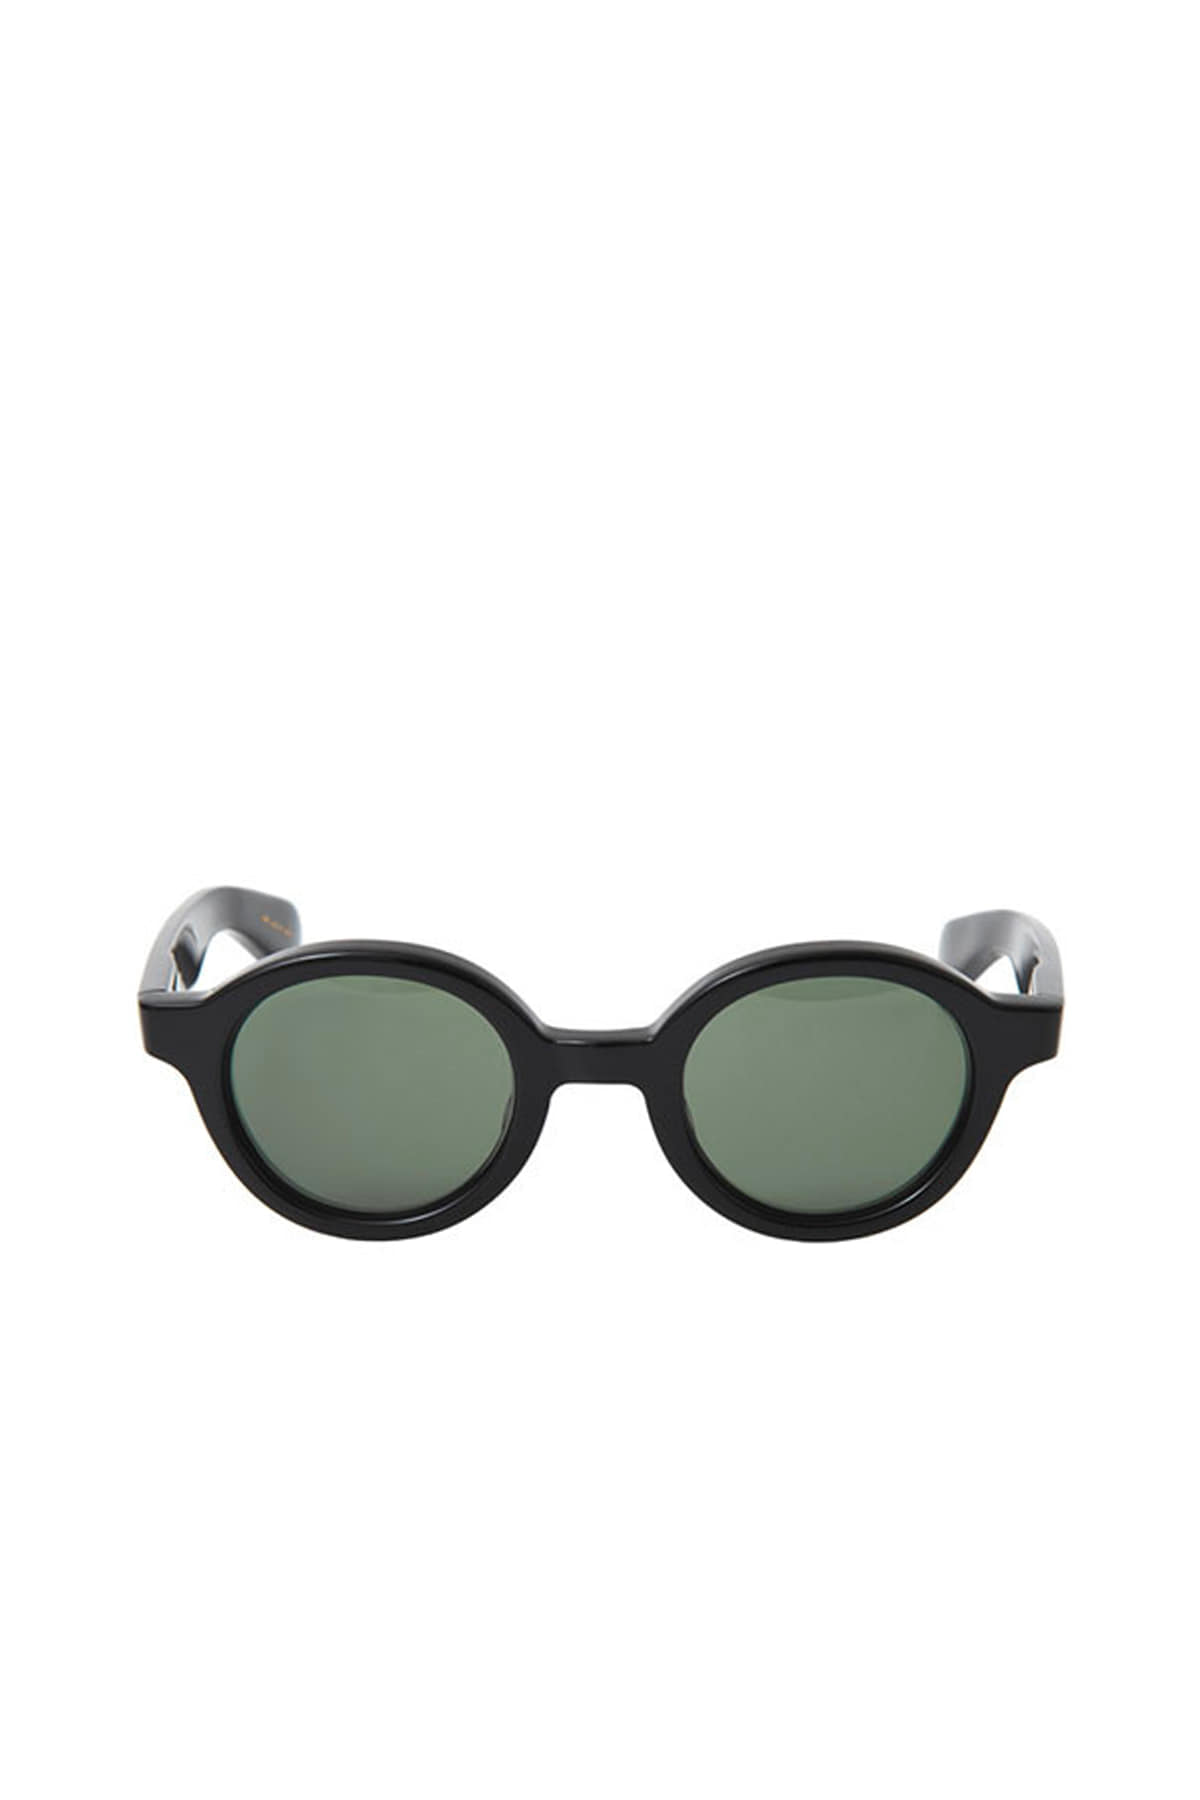 kearny : Peter Sunglass (Black)